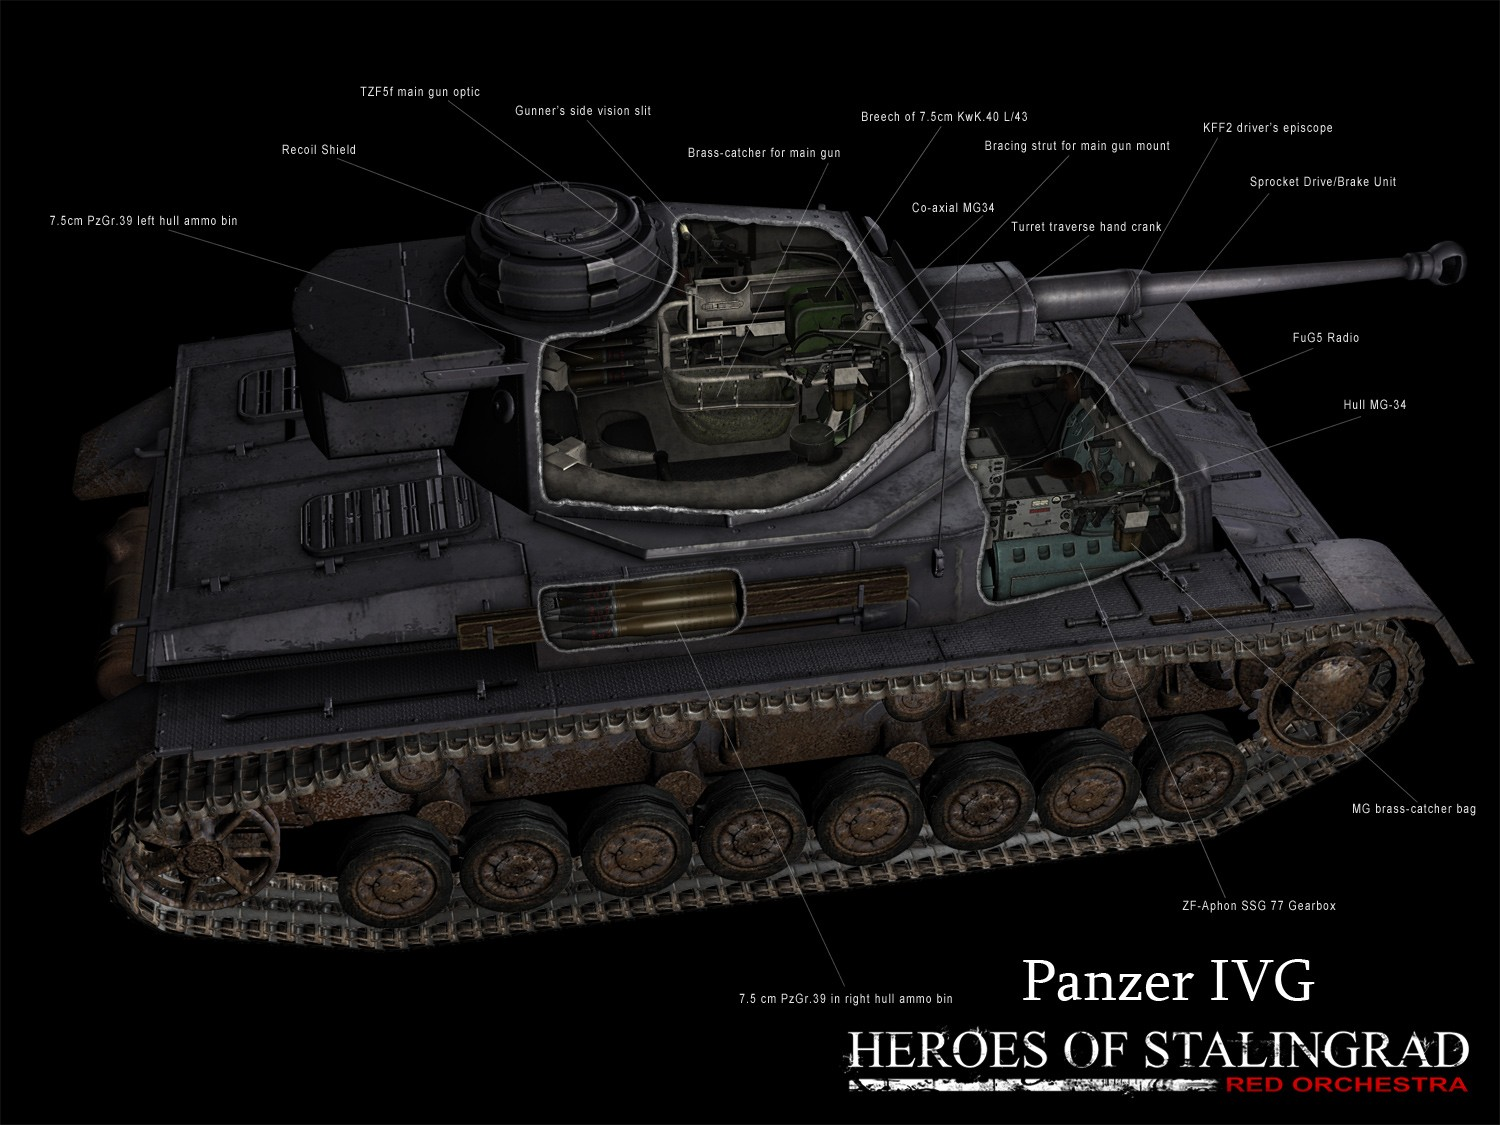 Heroes of Stalingrad Red Orchestra 2